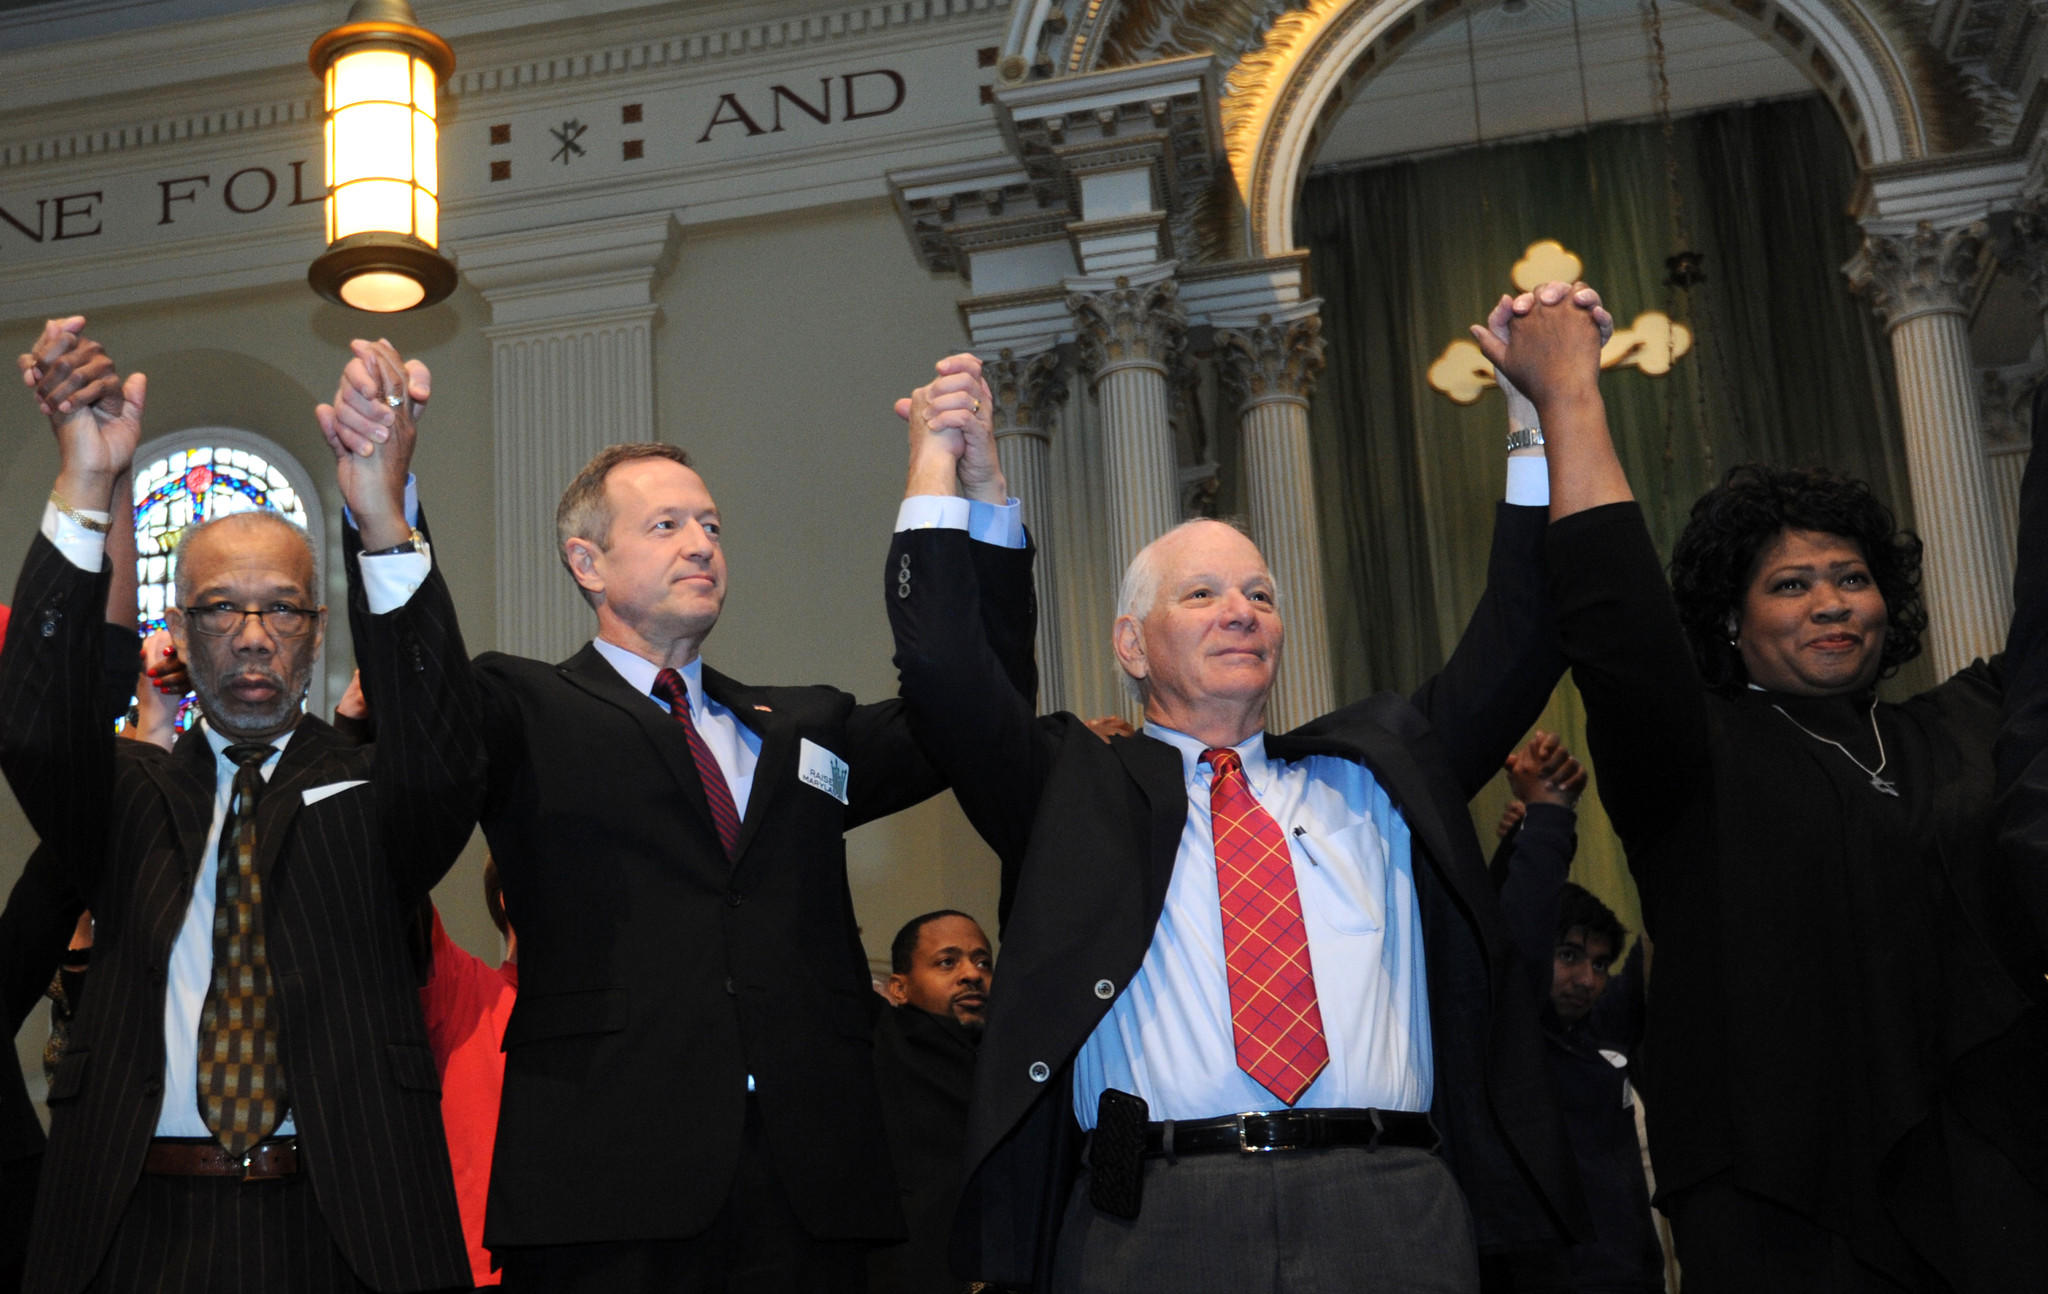 At St. Vincent de Paul, raising their arms in support of raising the minimum wage are from left: Rev. Dr. Harlie Walden Wilson, II, Israel Baptist Church; Gov. Martin O'Malley; Sen. Ben Cardin, and Rev. Dr. Carletta Allen, Asbury UMC (Annapolis).